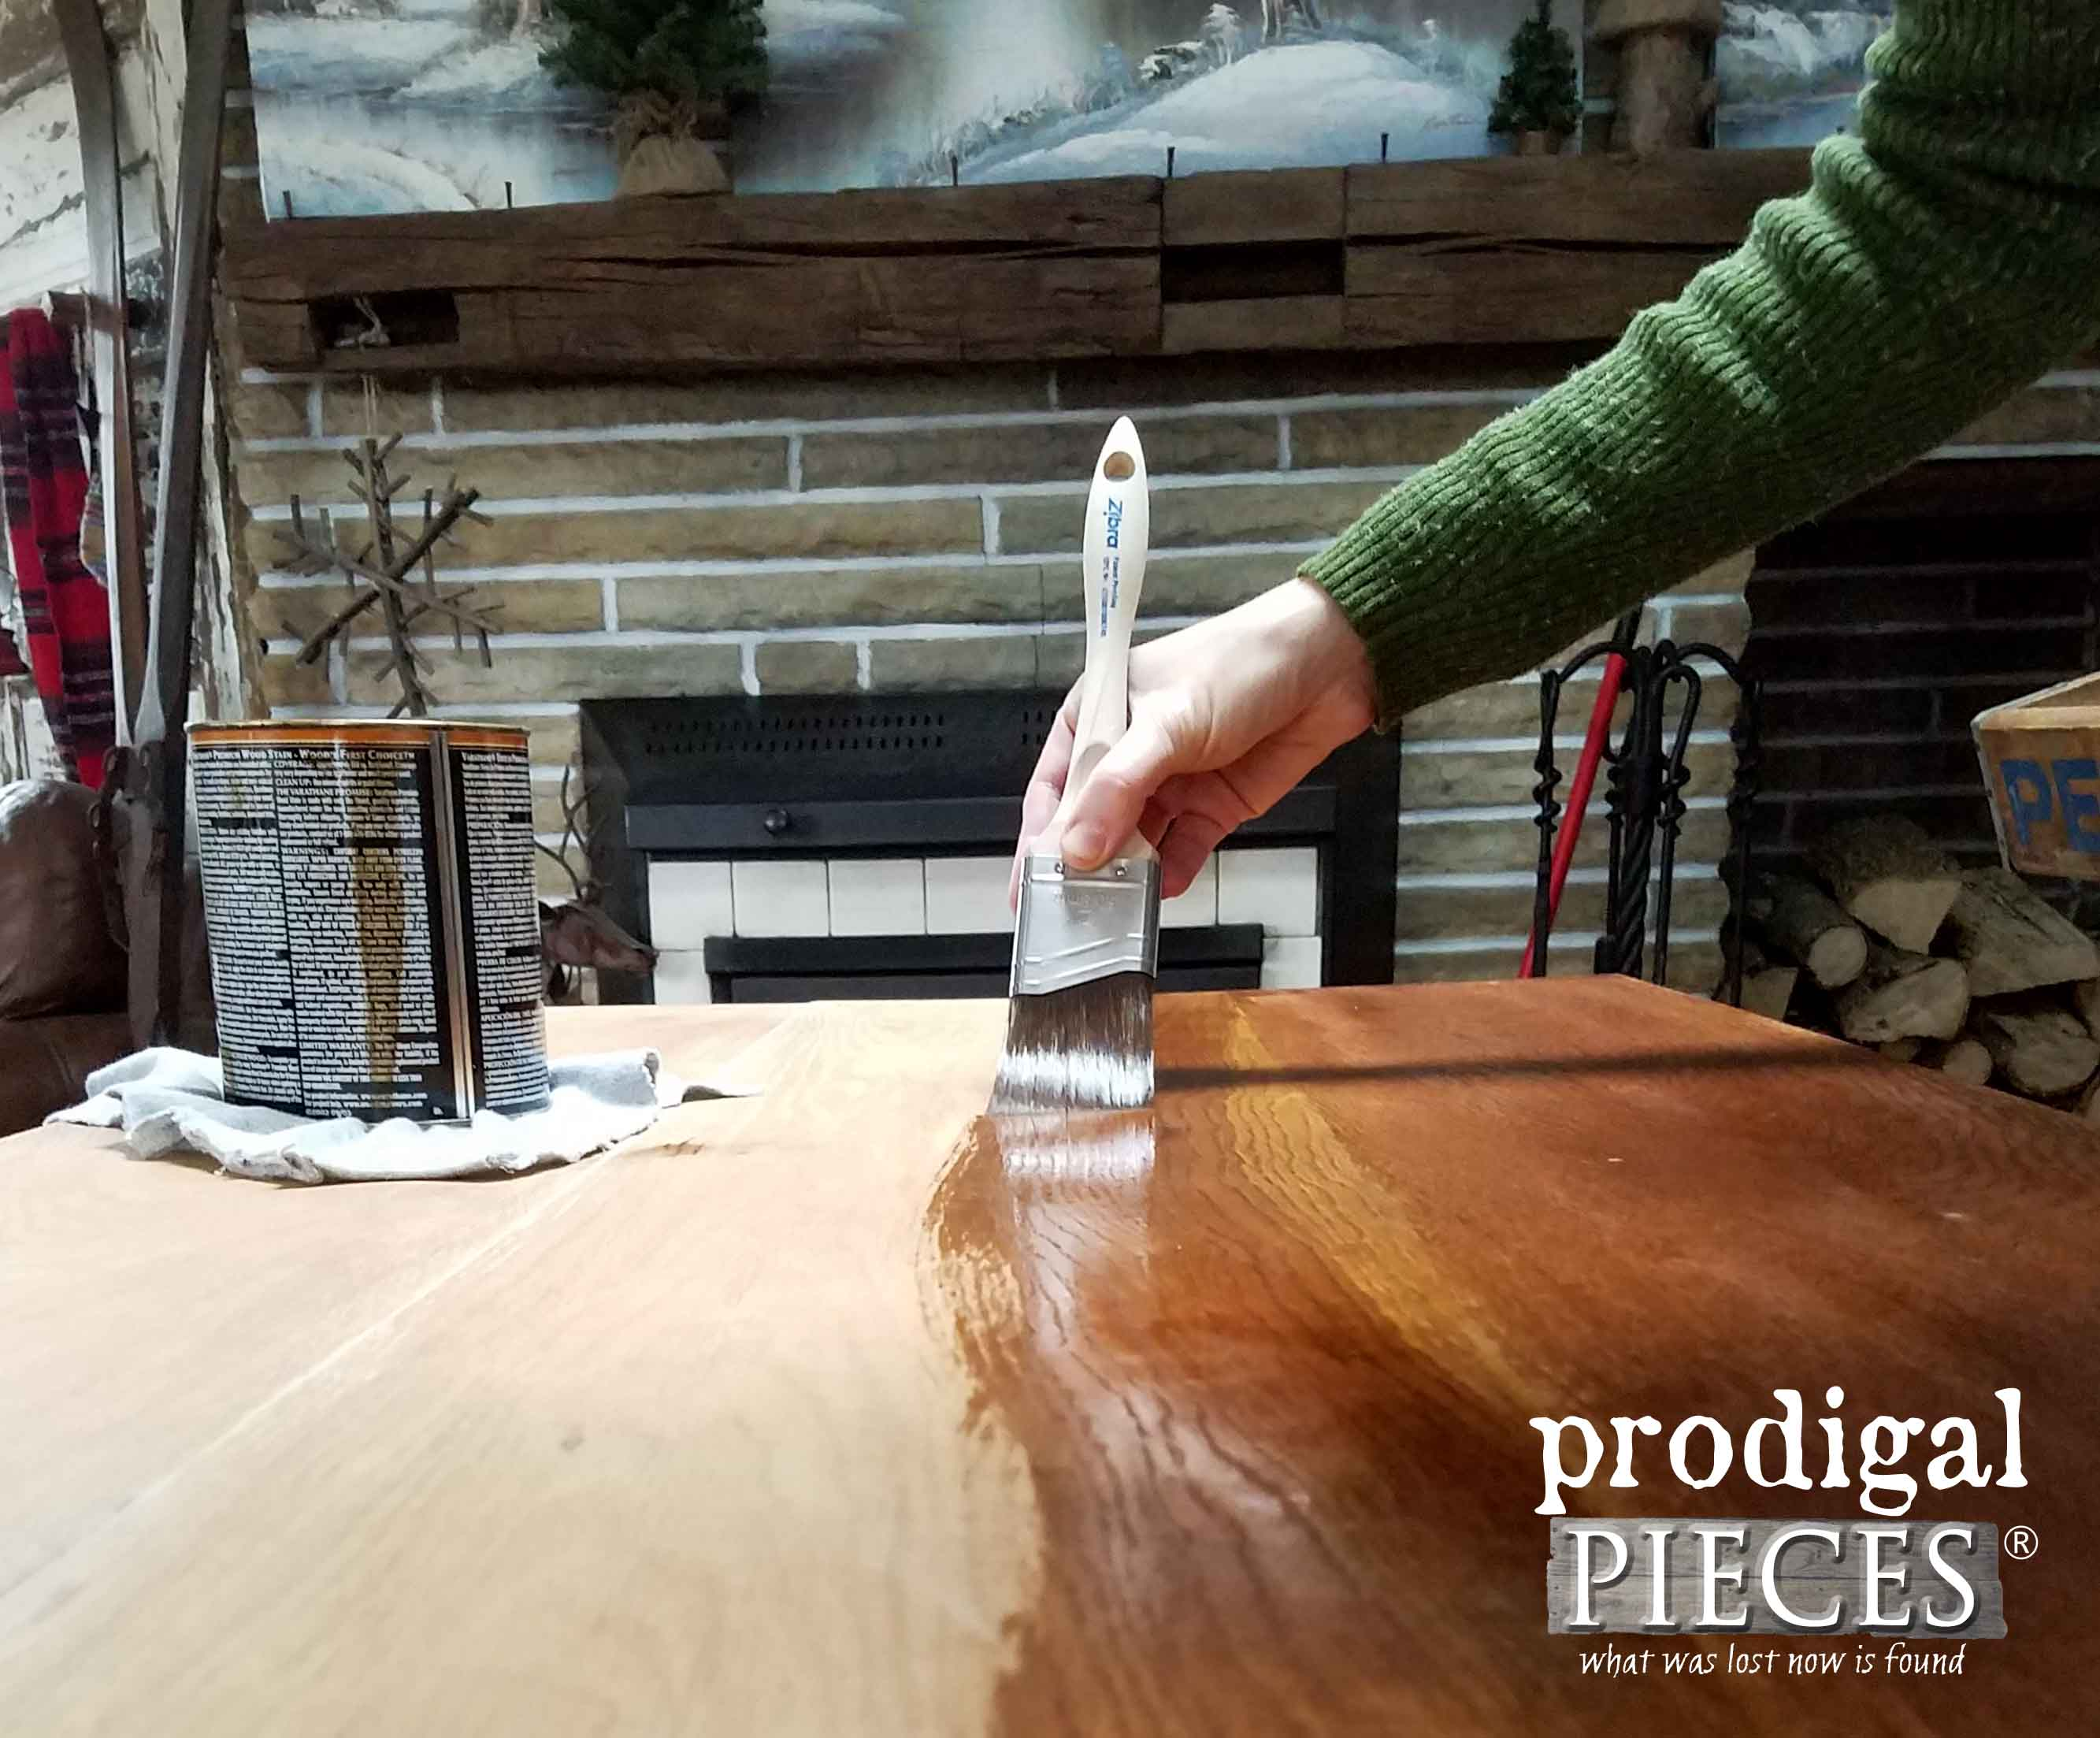 Staining Desk Top with Zibra Brushes | Prodigal Pieces | prodigalpieces.com